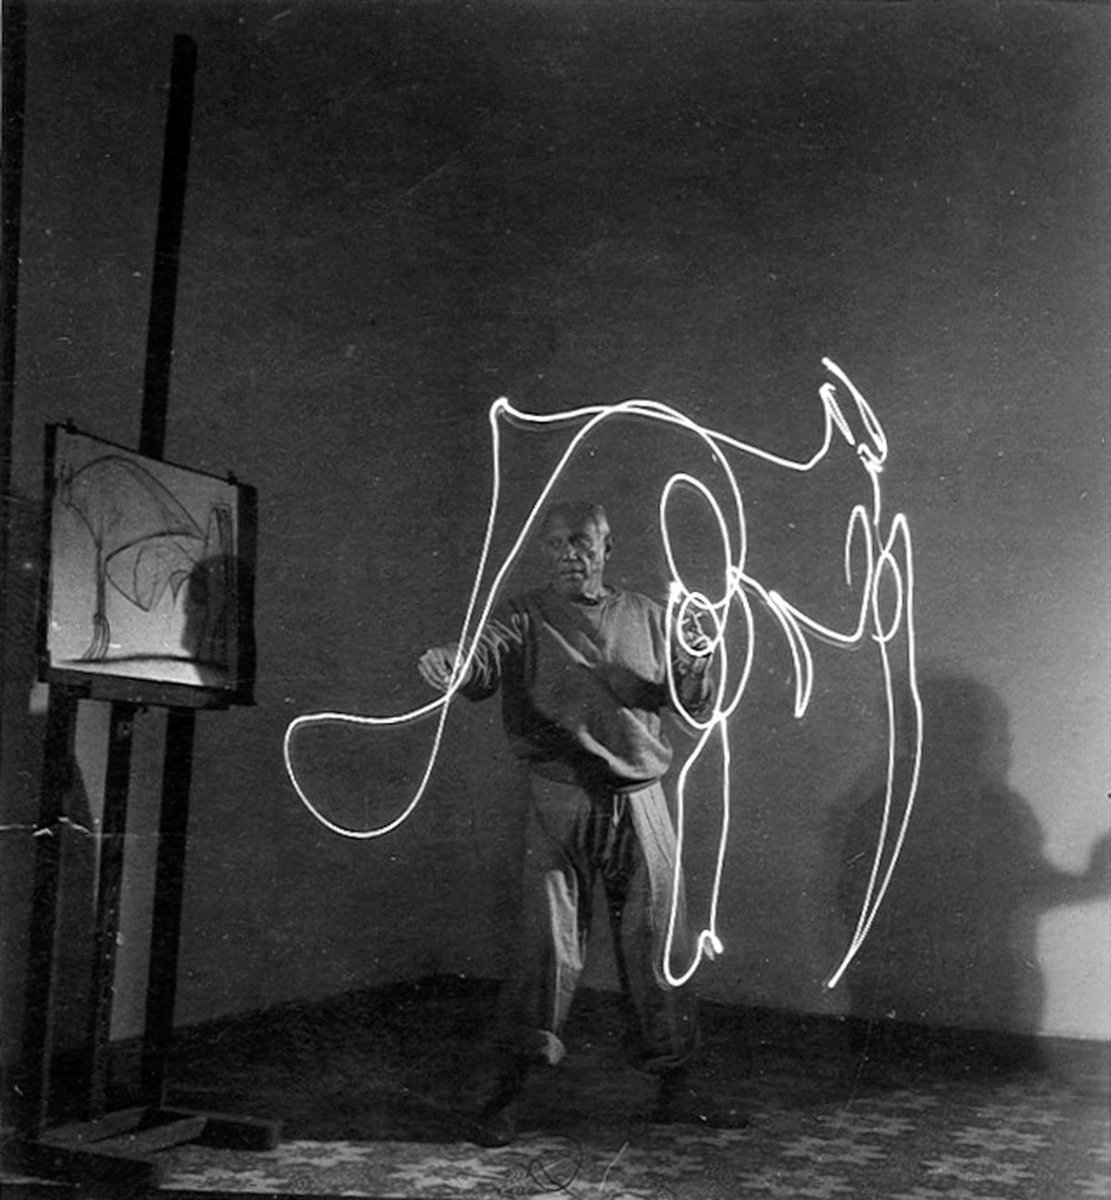 #Picasso understood #virtualreality in these drawings #uxdesign #iamdesignsjoel